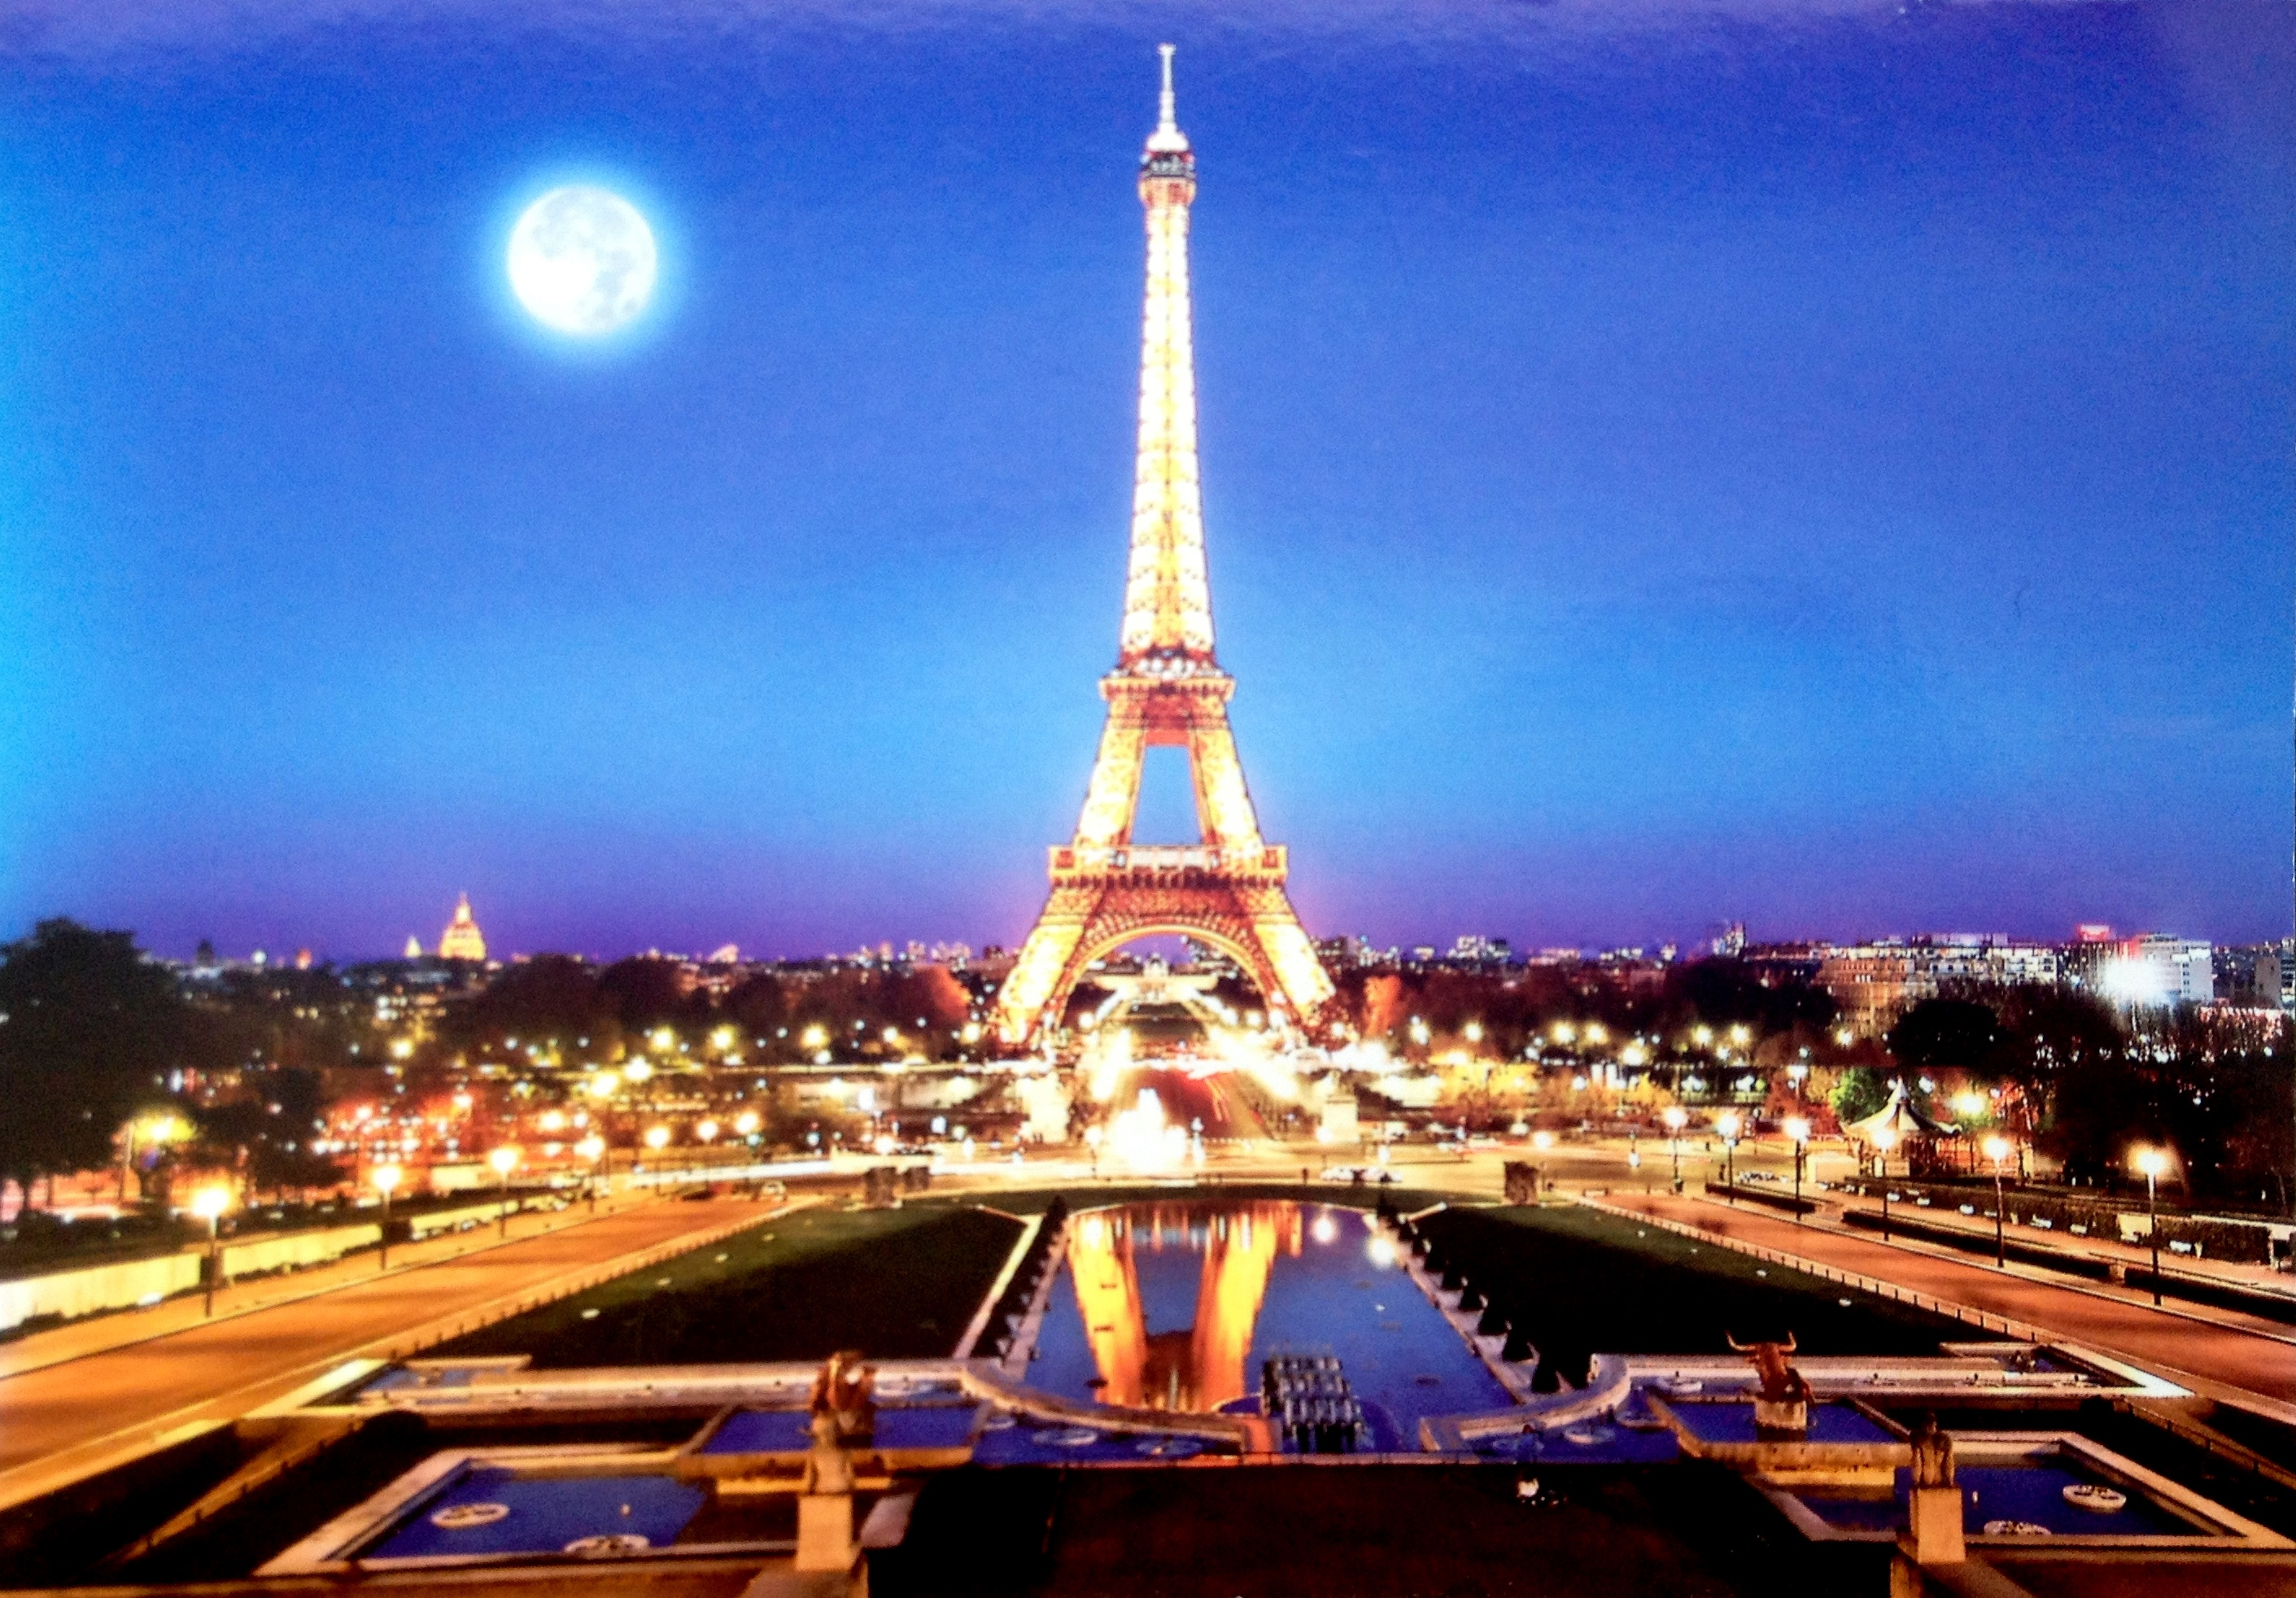 First Love Wallpapers Quotes Postcard Of The Week The Eiffel Tower At Night The Well